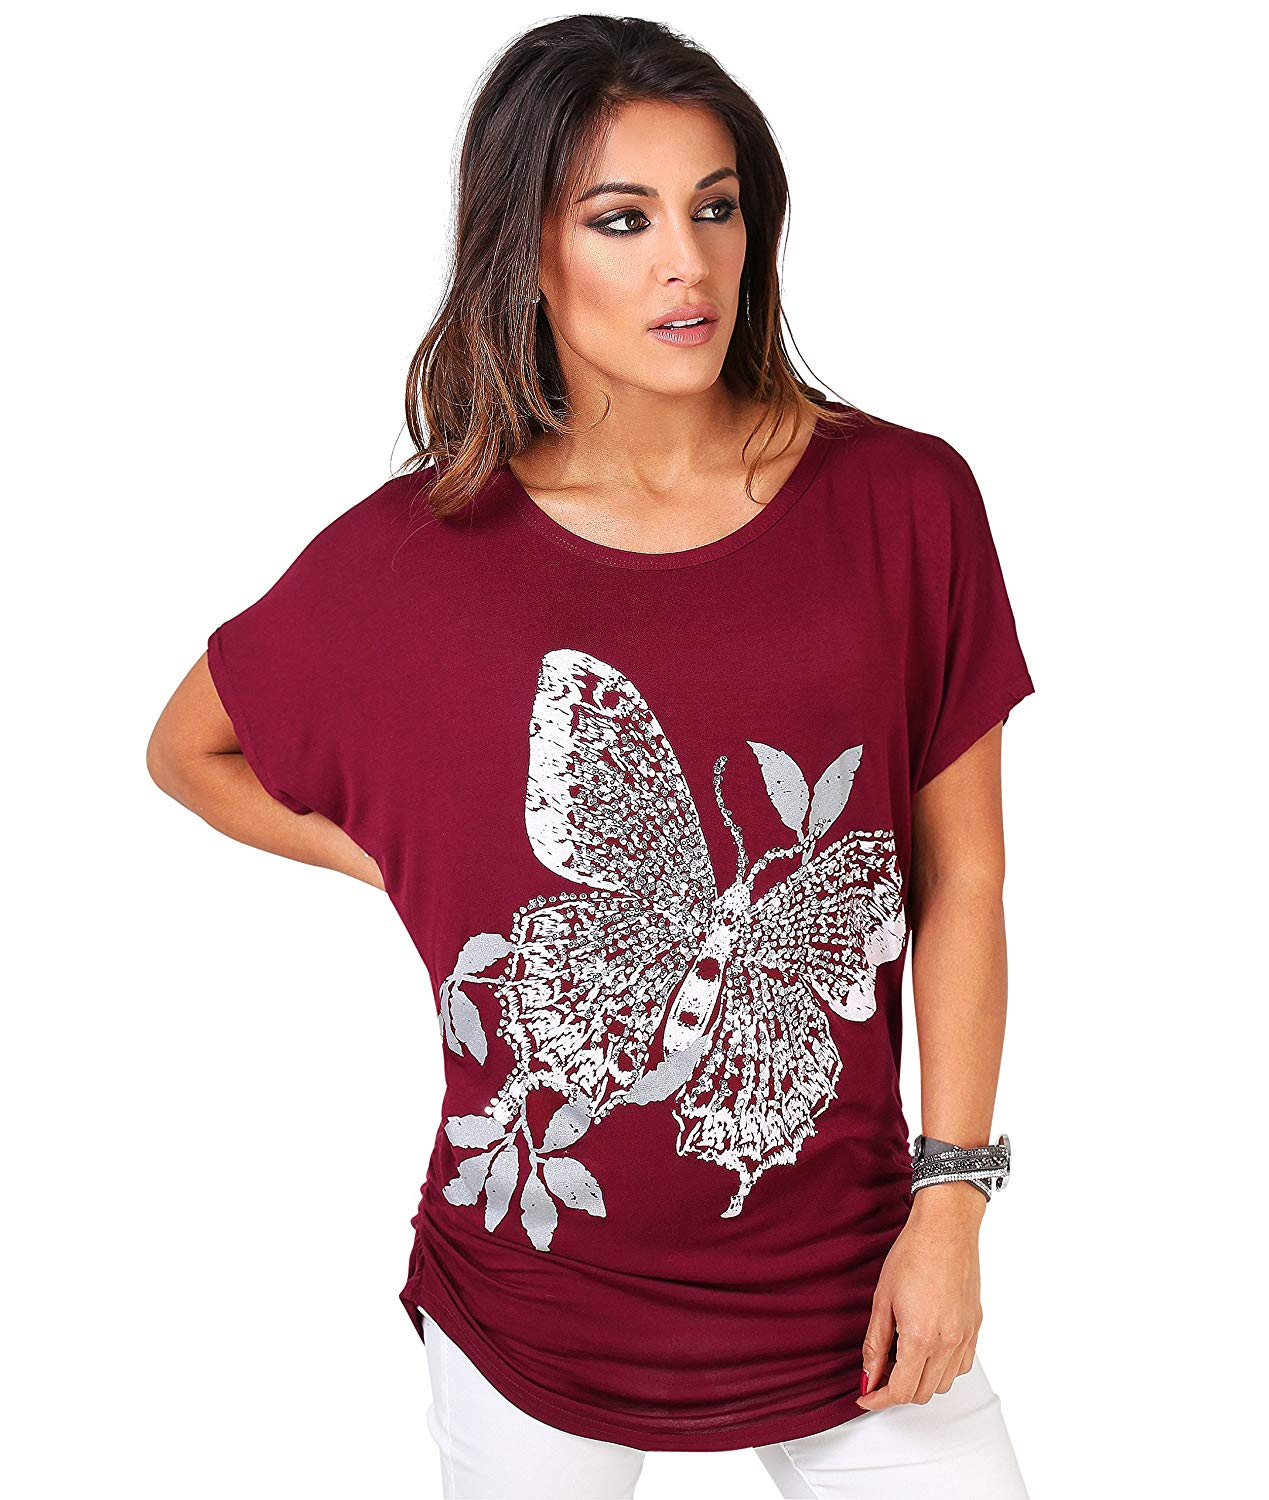 9137993e Get Quotations · KRISP Women's Fashion Casual Oversized Comfy Sequin  Butterfly Print Shirred T-shirt US ...